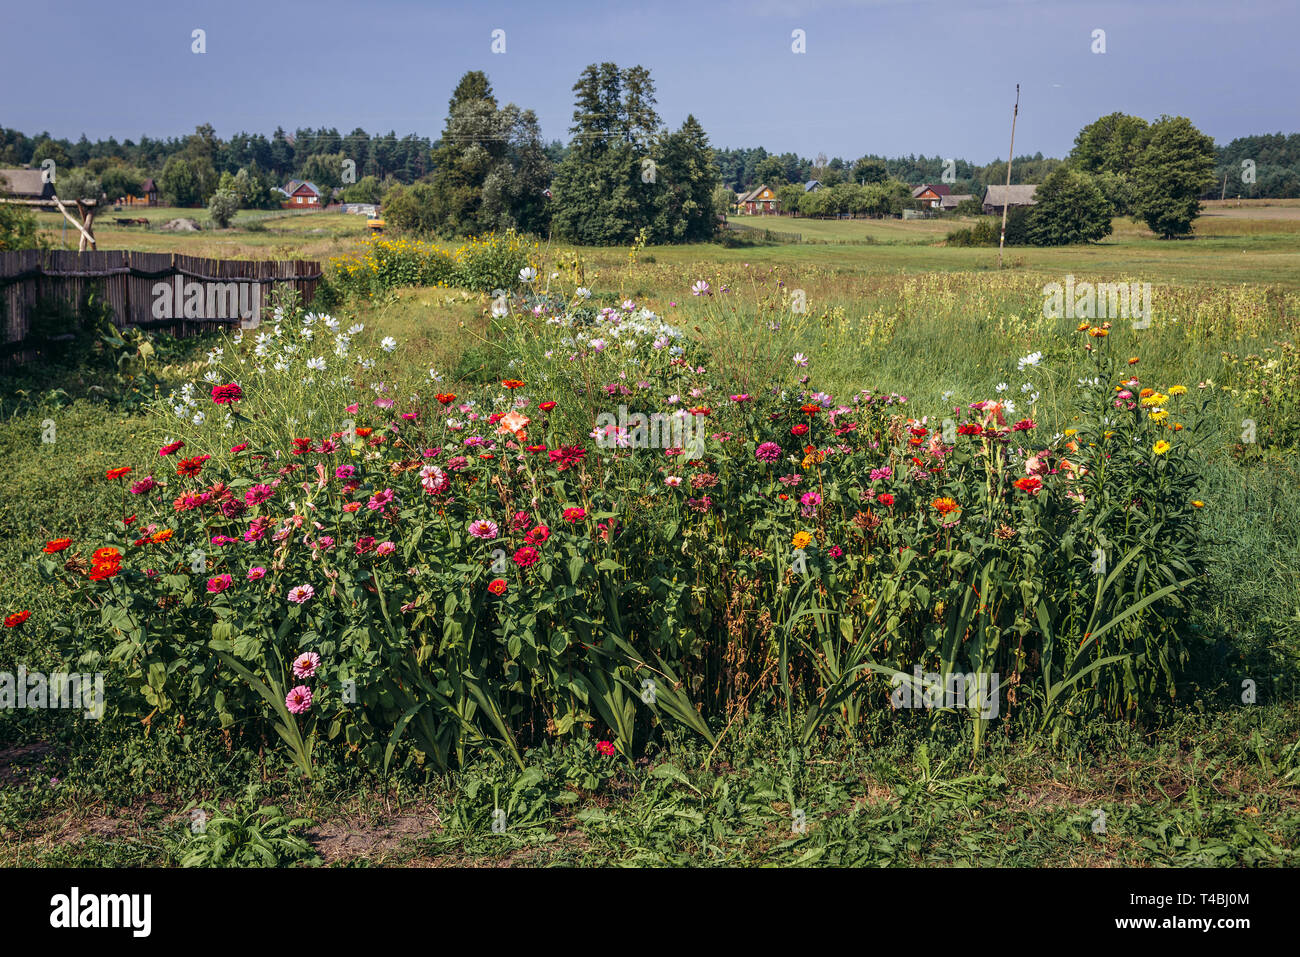 Bunch of flowers in Soce village on so called The Land of Open Shutters trail, famous for traditional architecture in Podlaskie Voivodeship, Poland - Stock Image